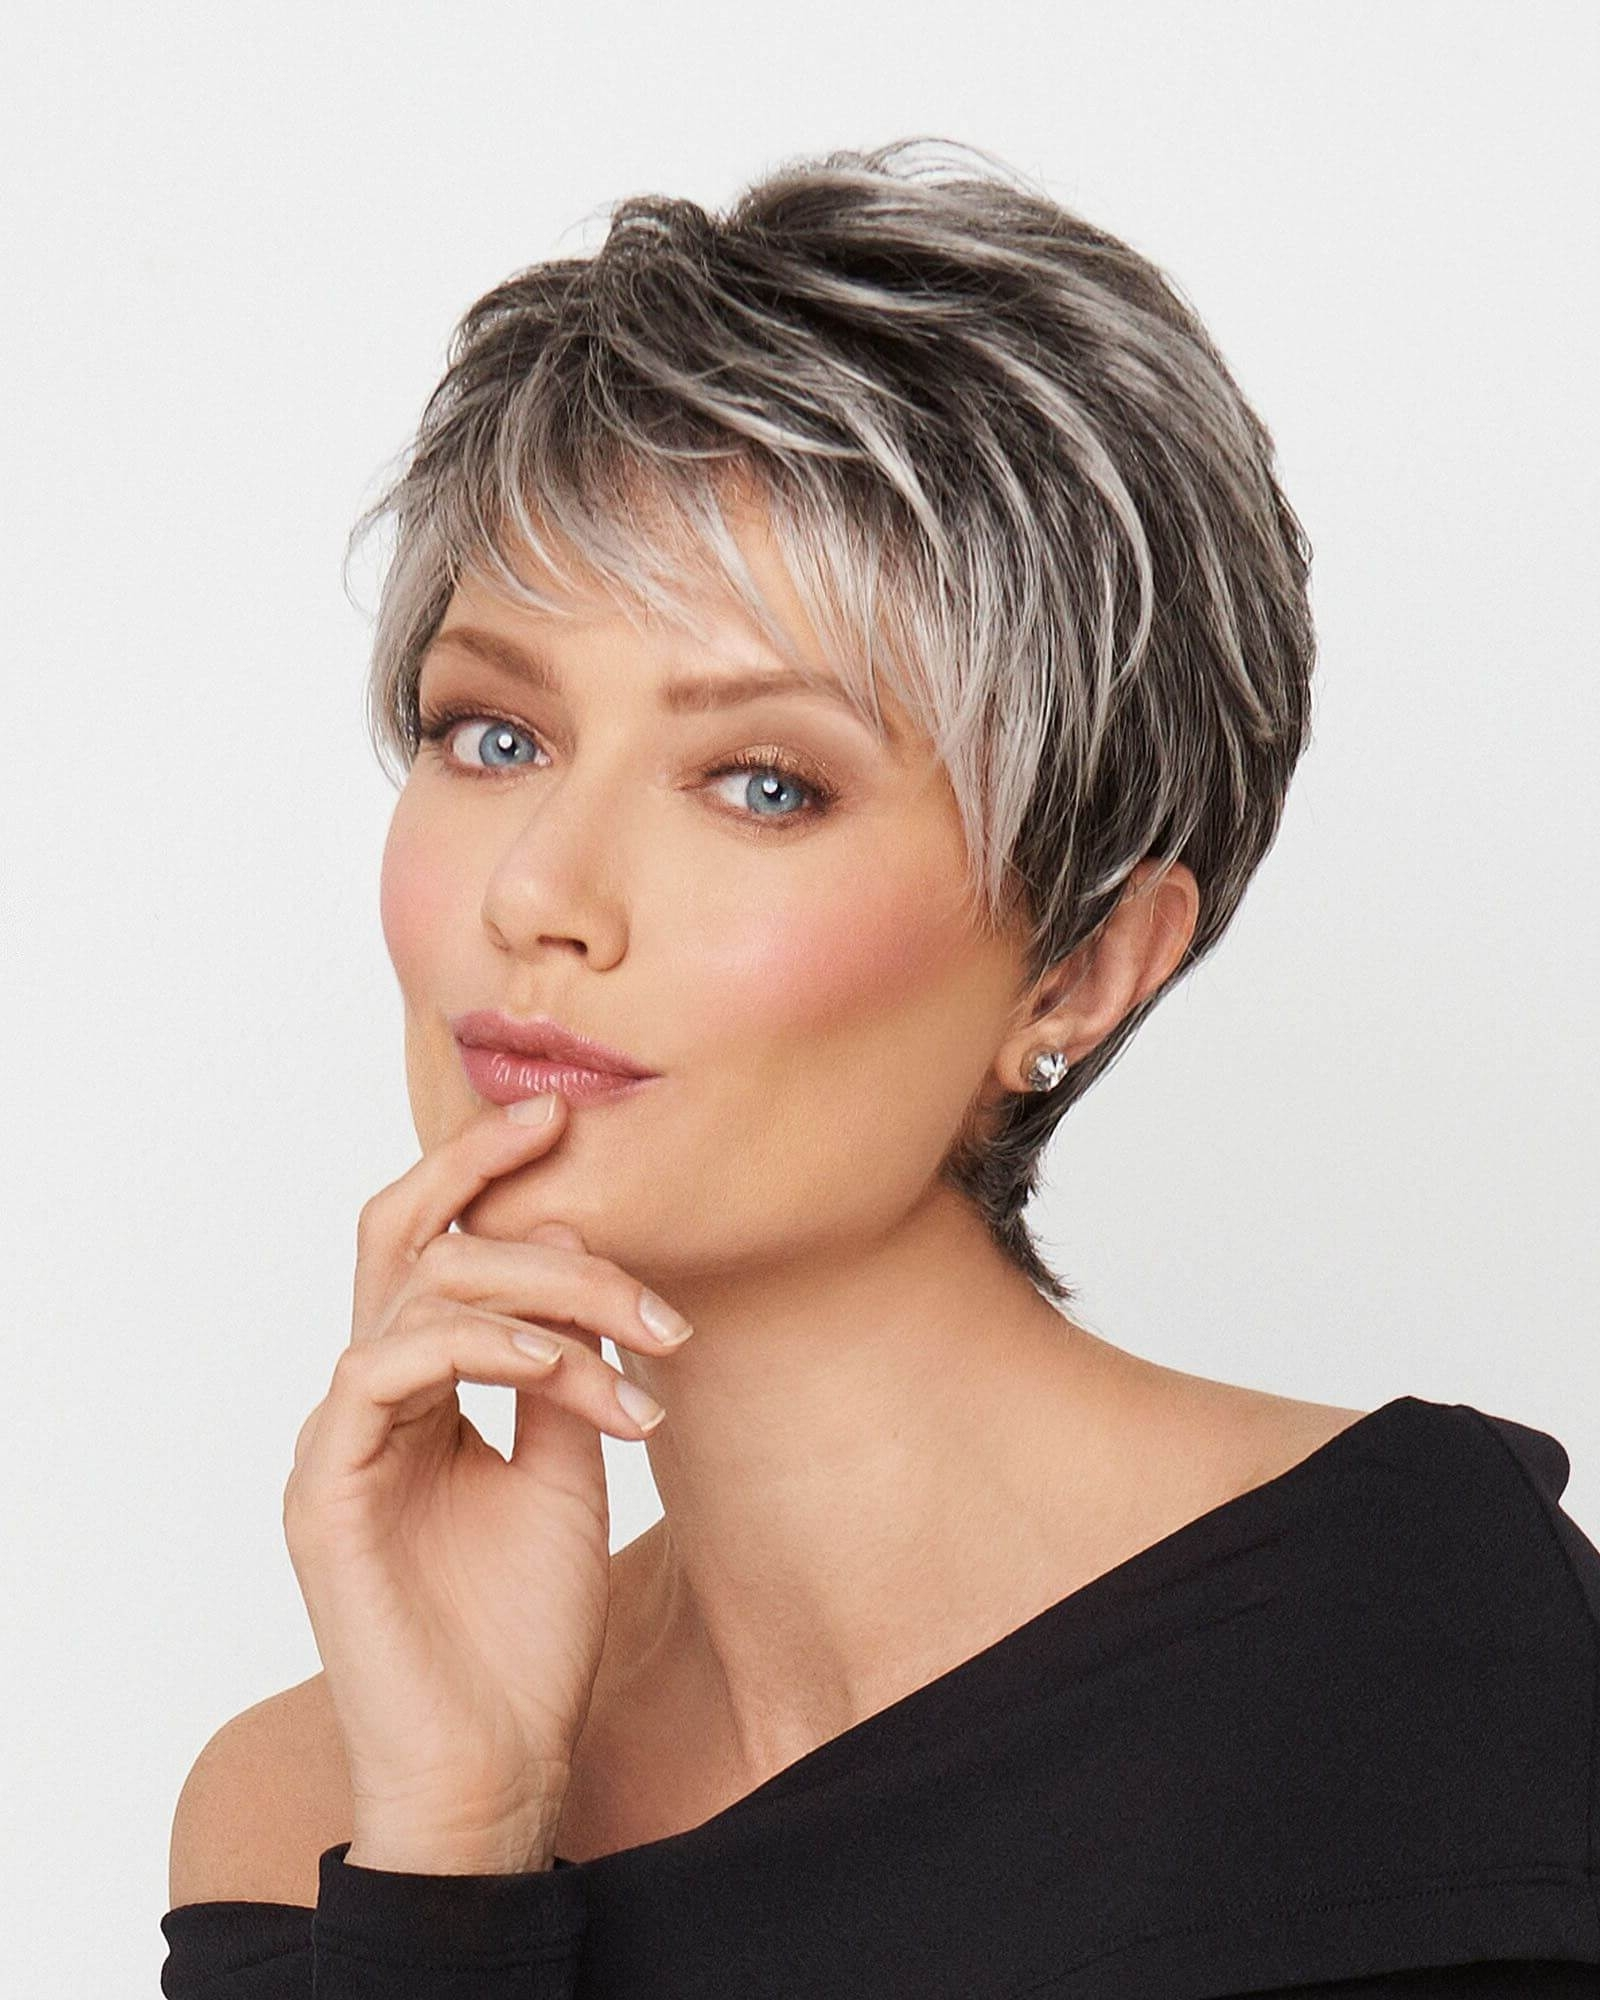 Well Liked Sassy Undercut Pixie Hairstyles With Bangs For 50 Pixie Haircuts You'll See Trending In (View 8 of 20)